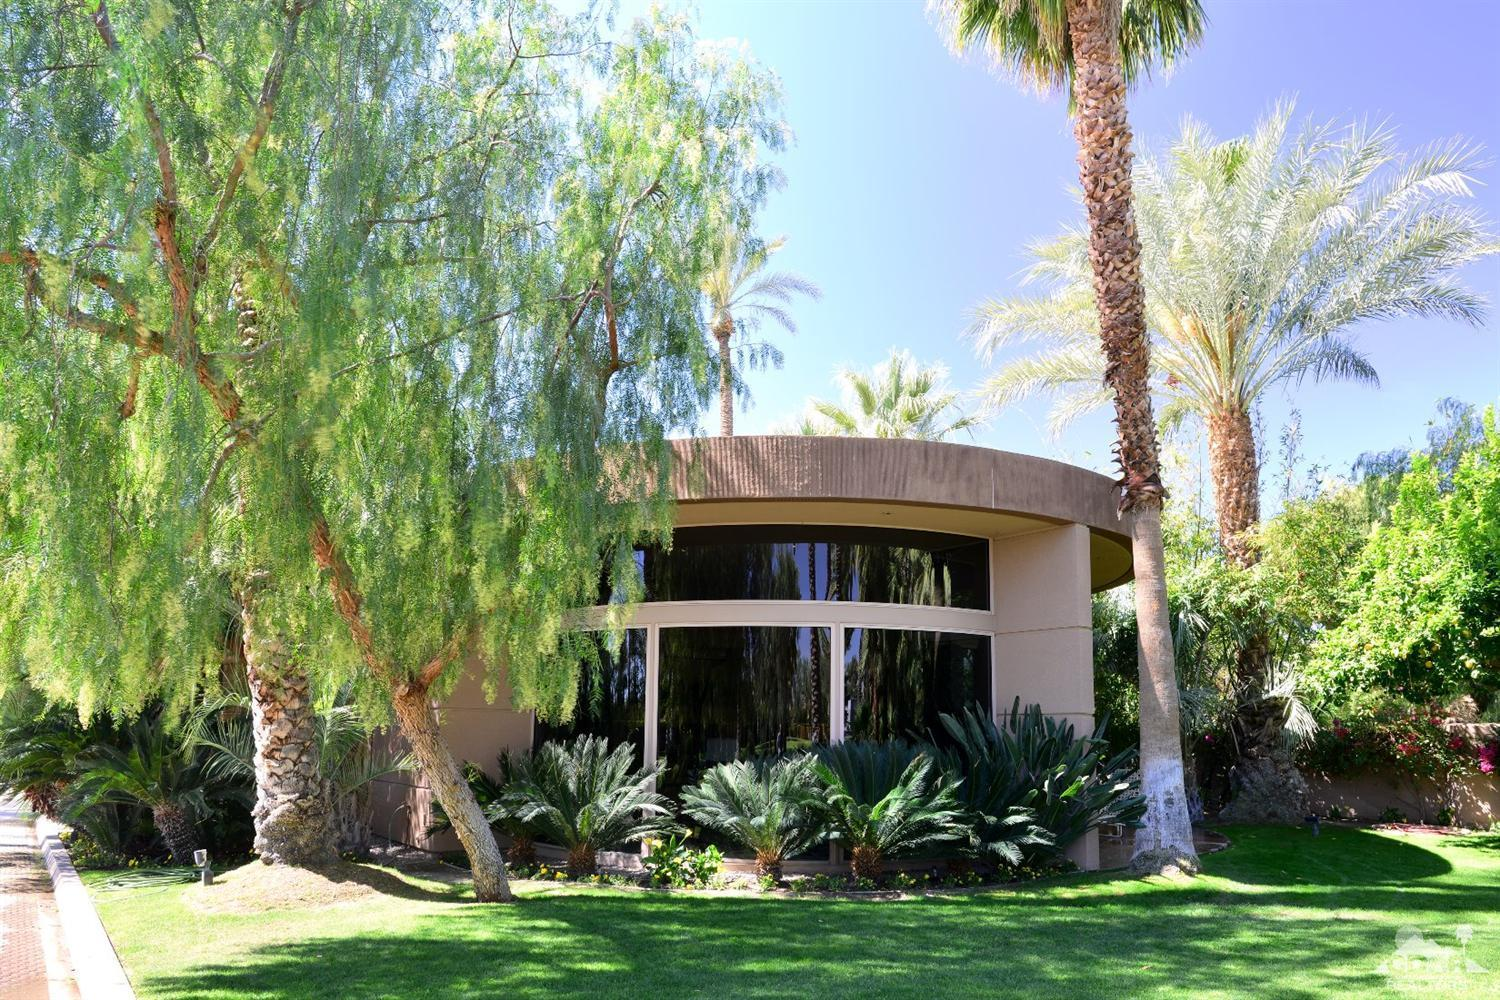 13 Strauss Terrace, Rancho Mirage